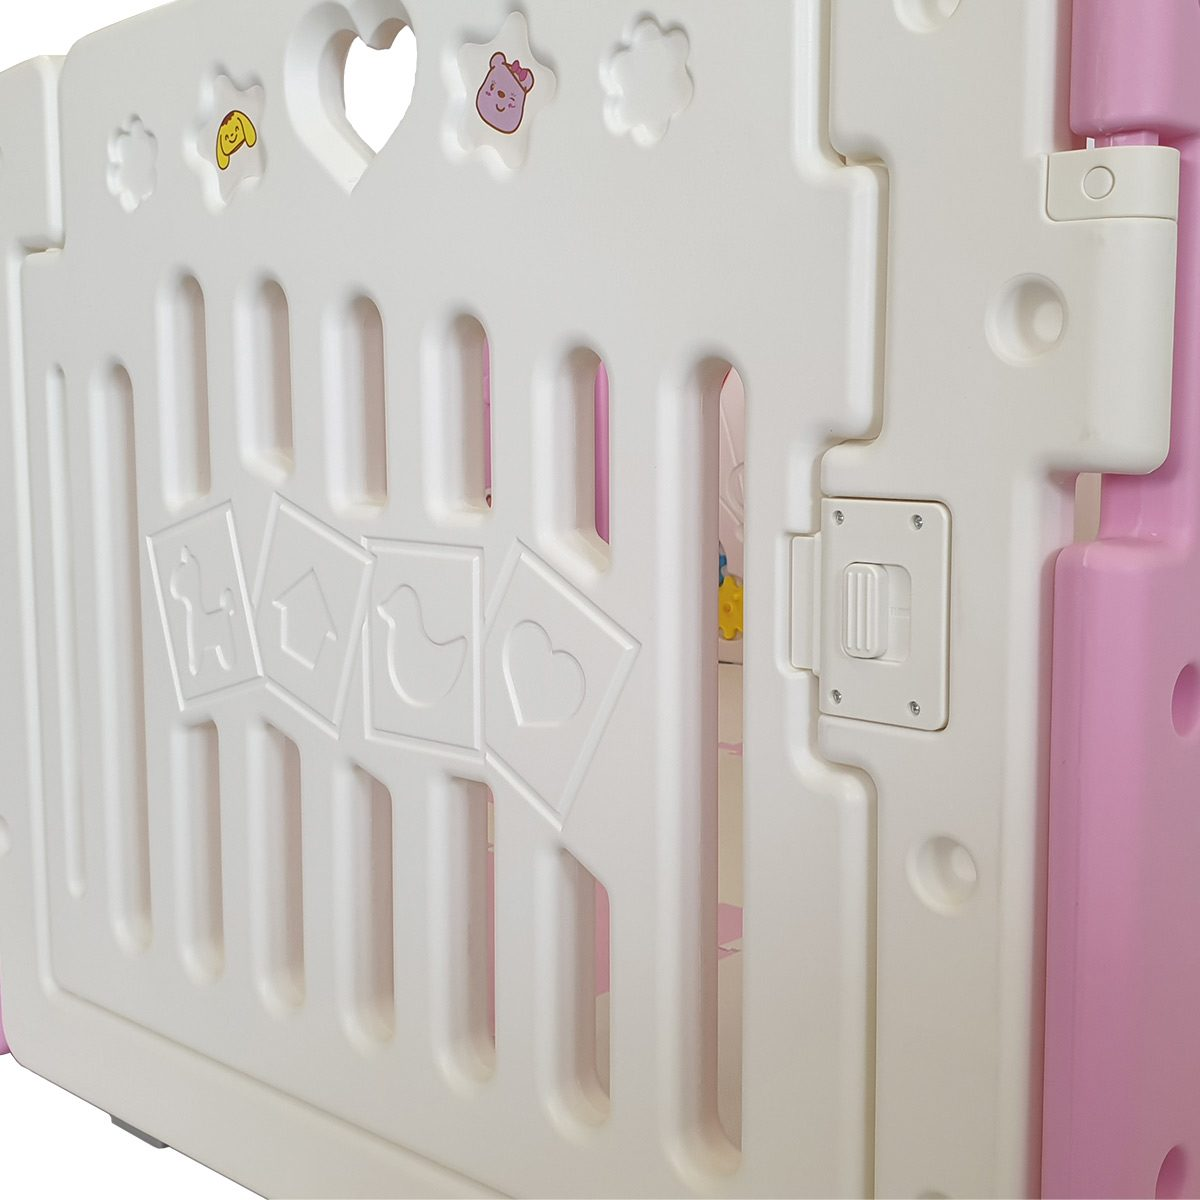 Our pink All Stars DUO playpen features a locking safety gate to keep your child safe as they play